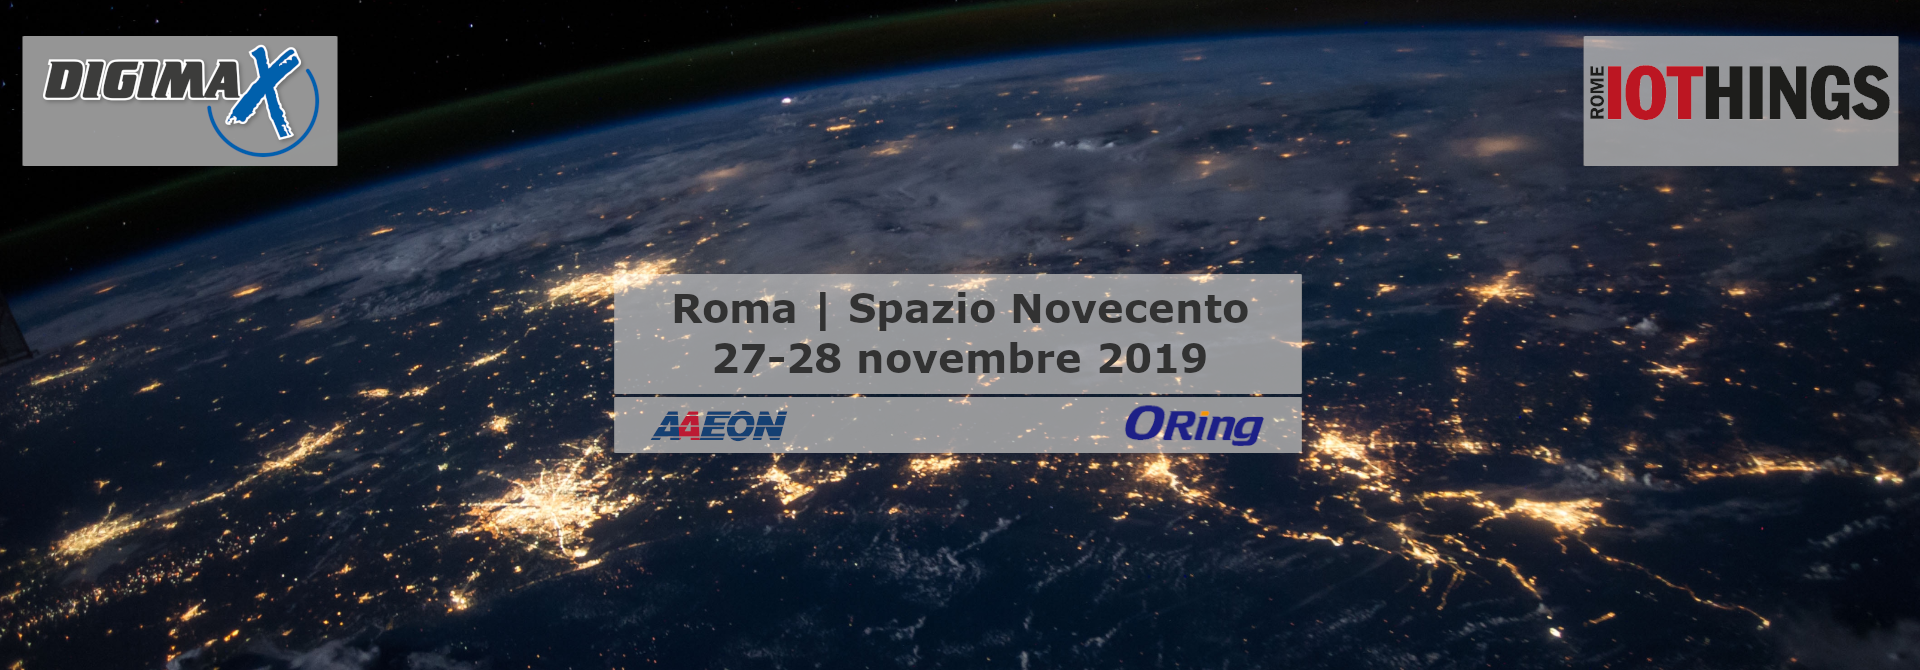 Evento nazionale IoThings Roma 2019 - Digimax